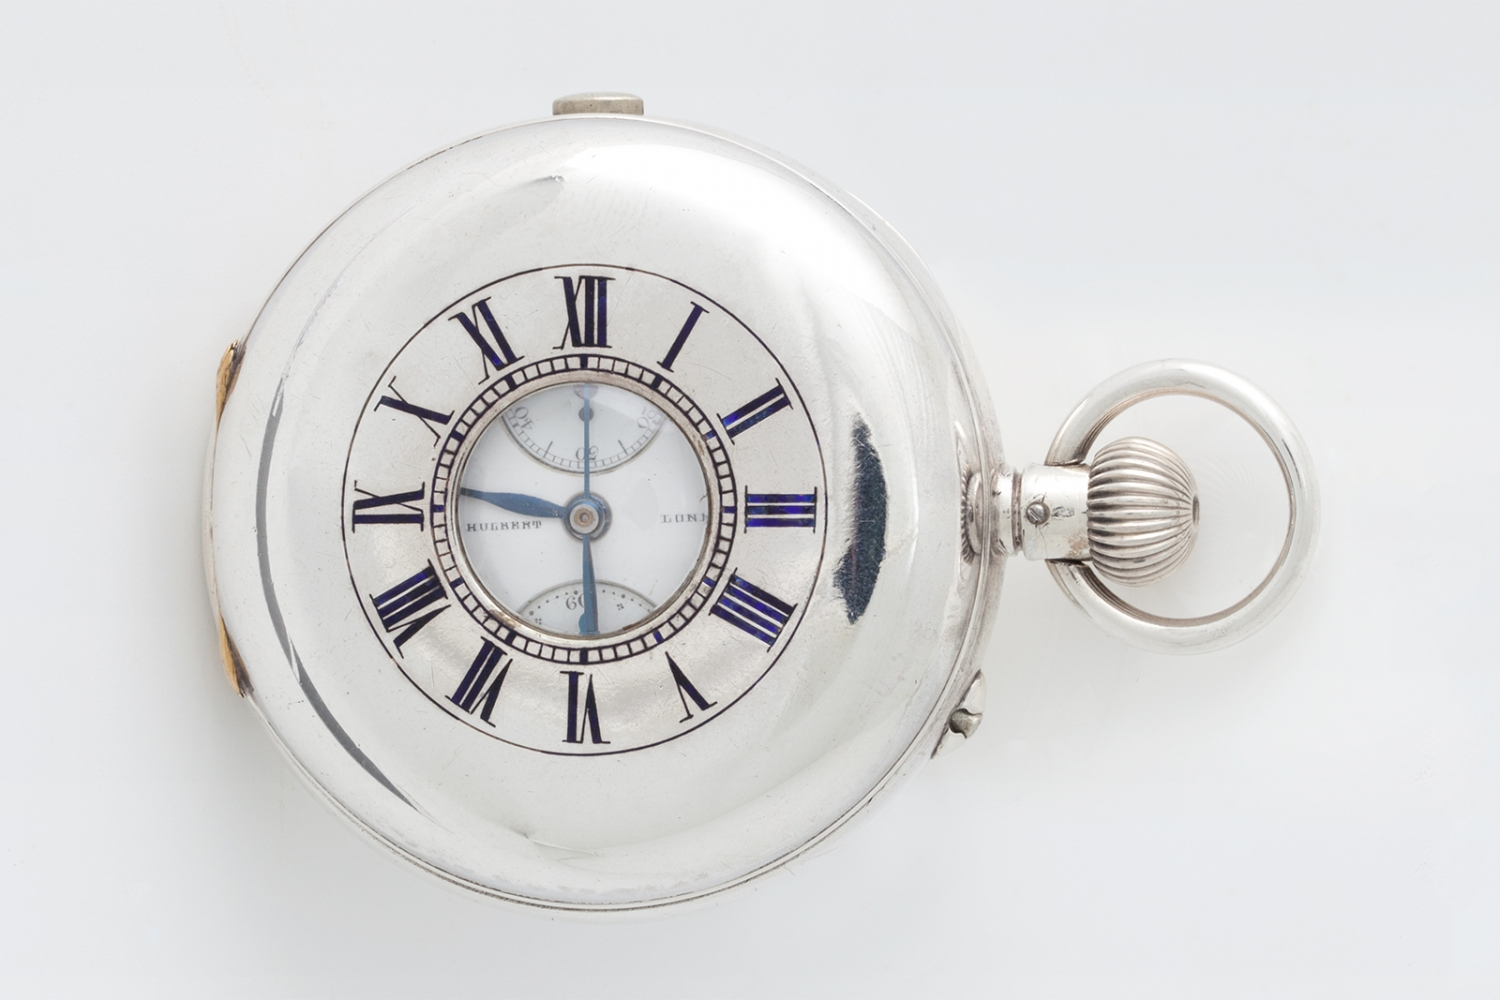 Silver cased half hunter watch owned by George Terry, made 1880